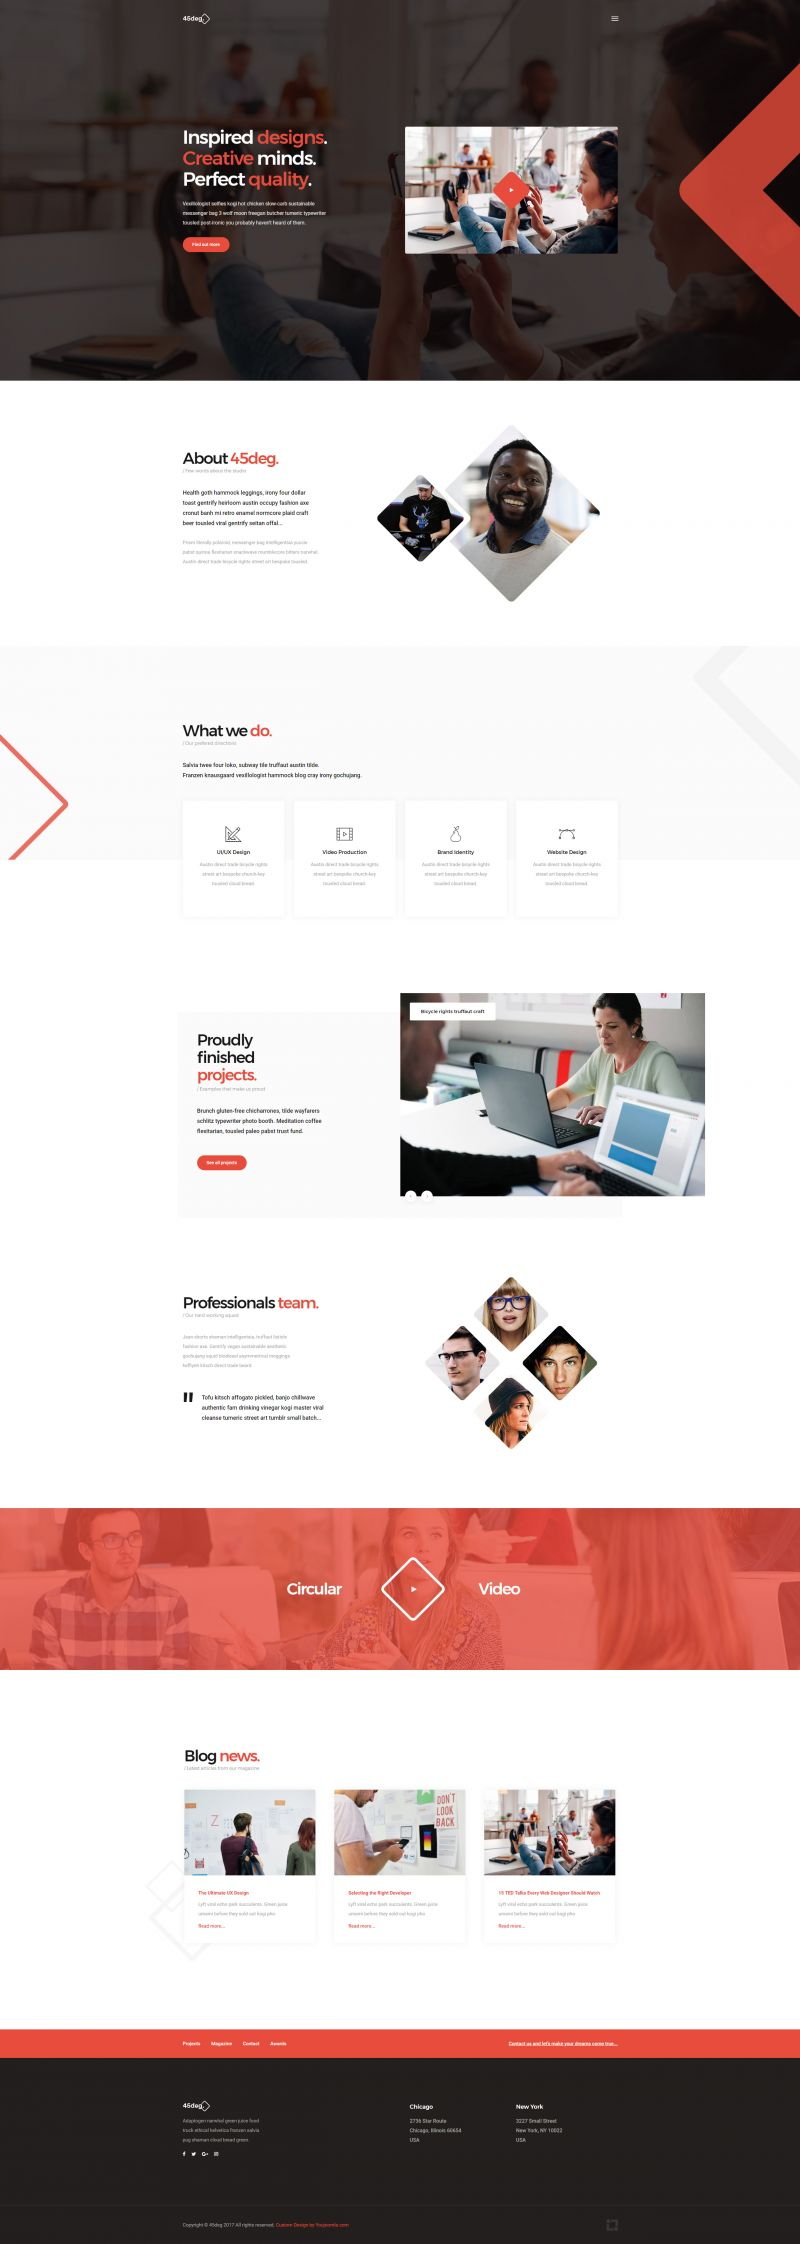 45deg - Joomla! Agency Template